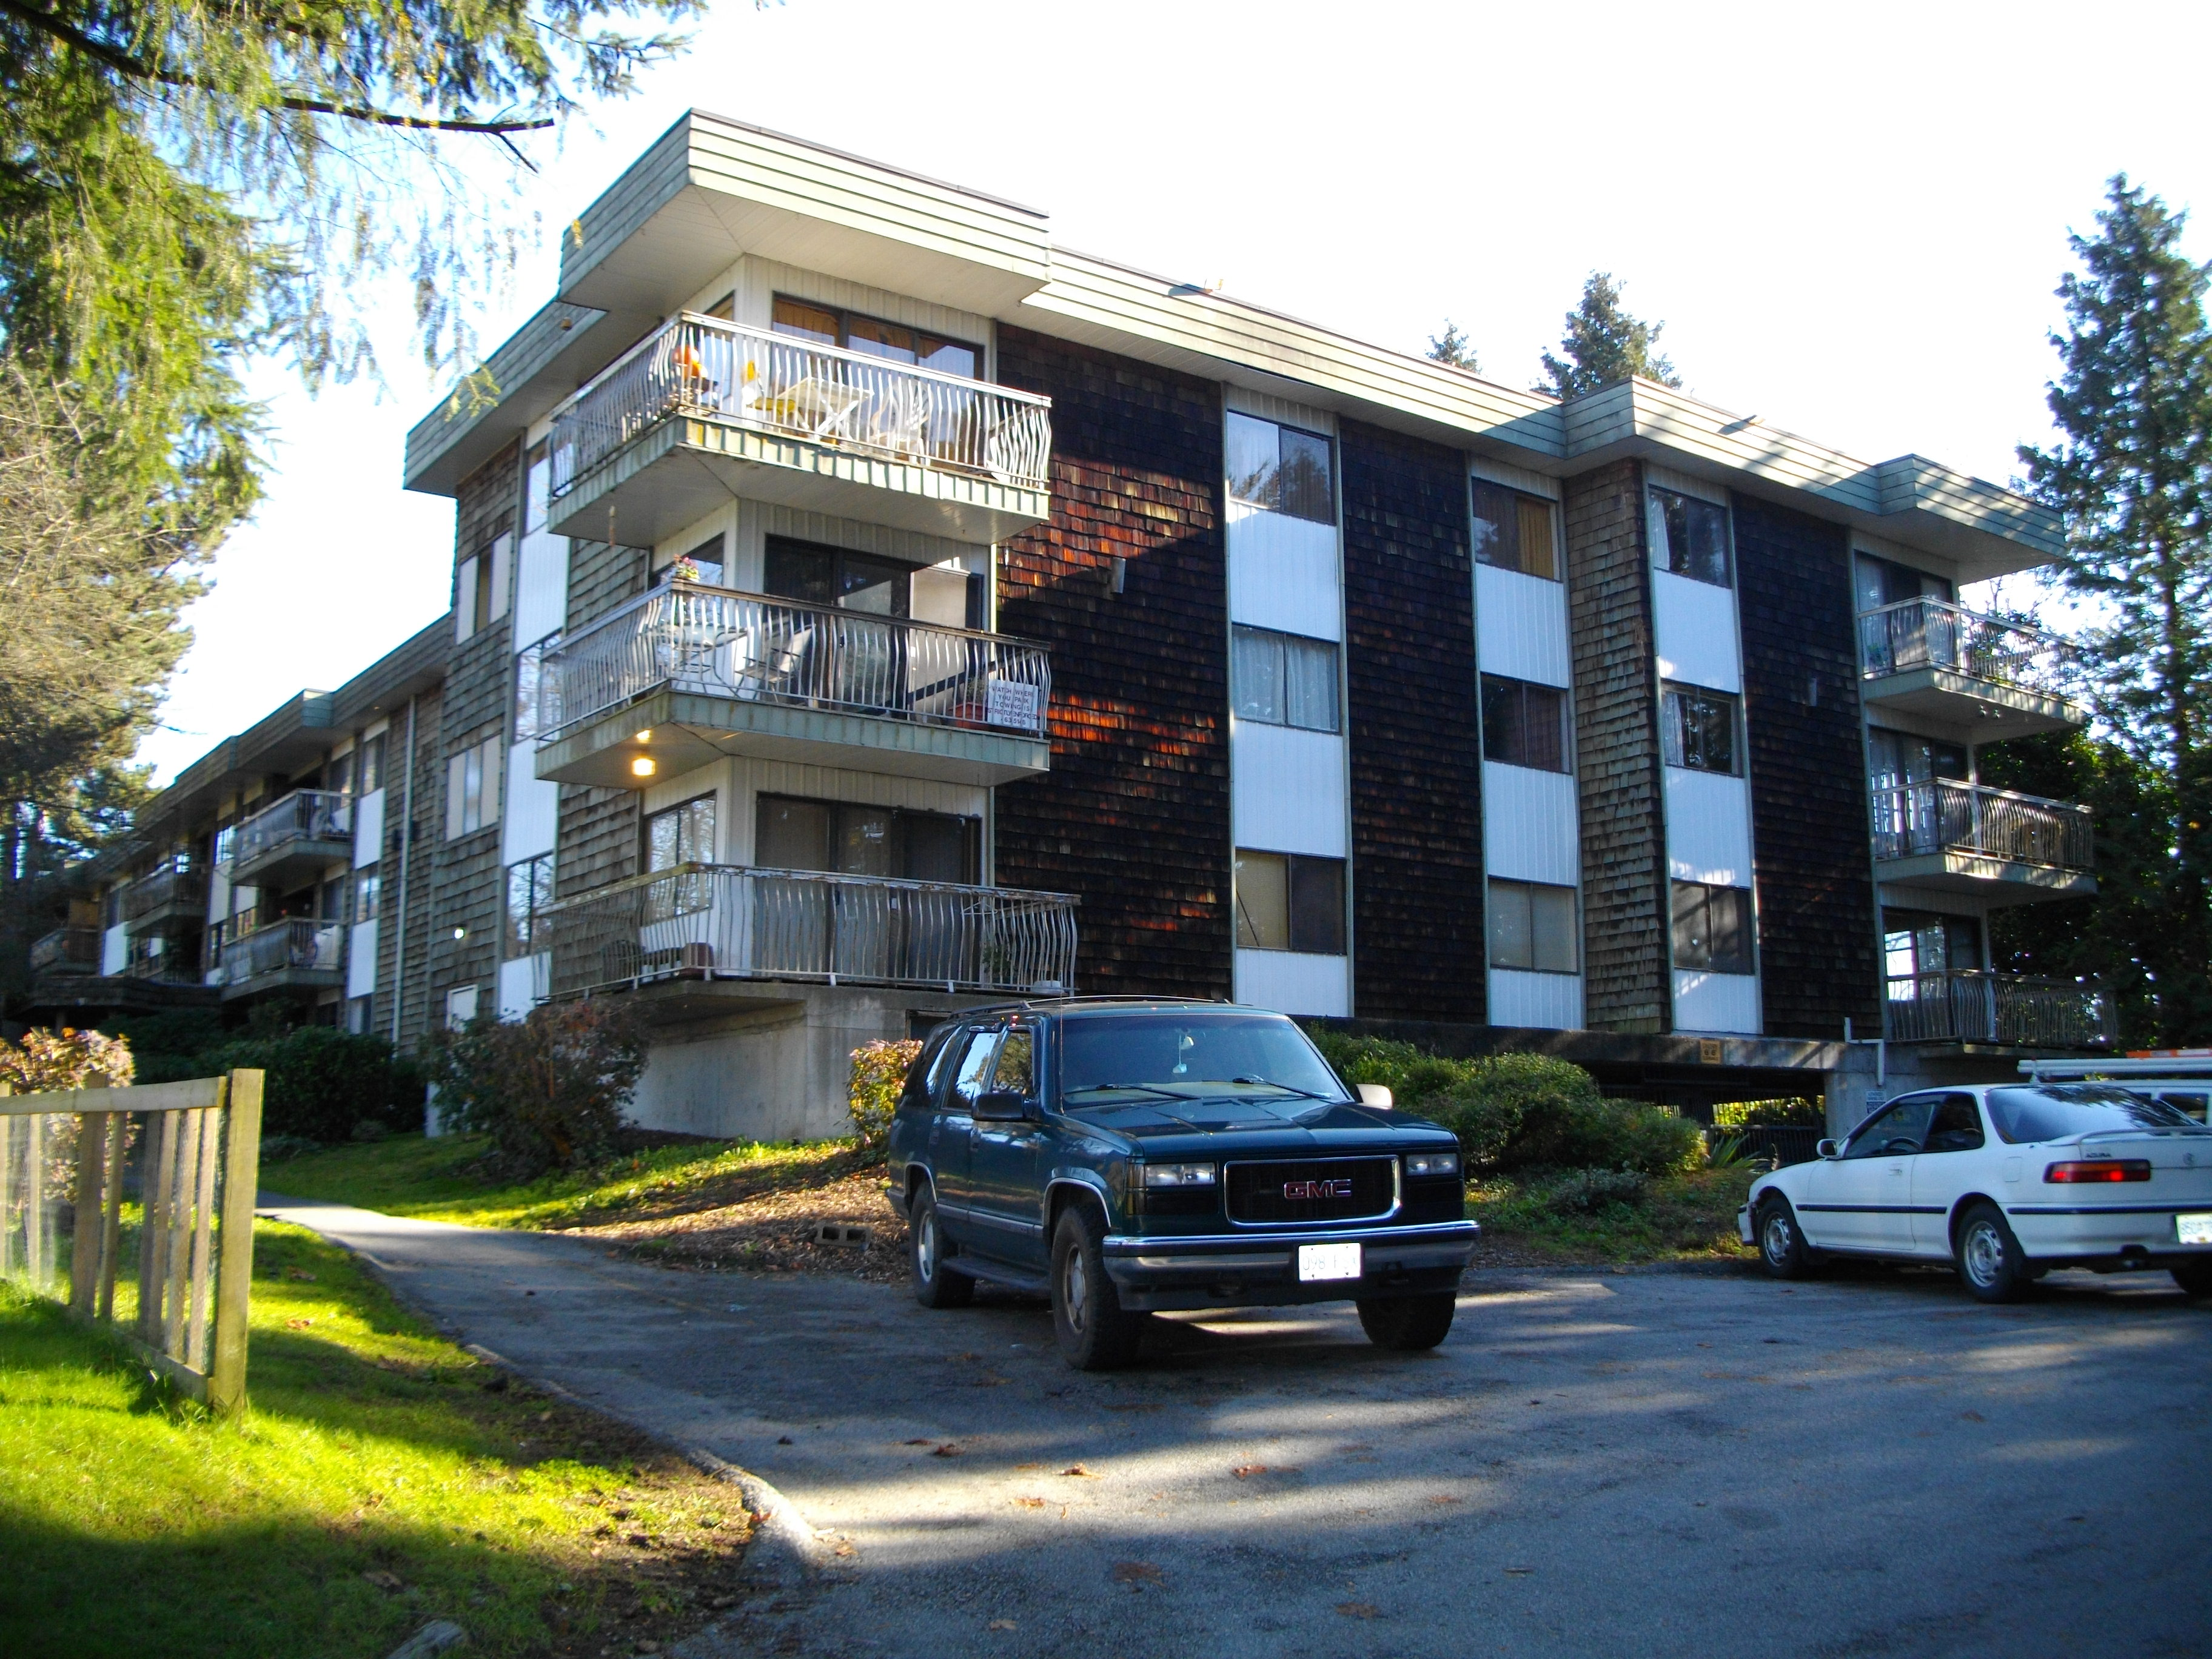 11895 Laity Street, Maple Ridge, BC - $1,650